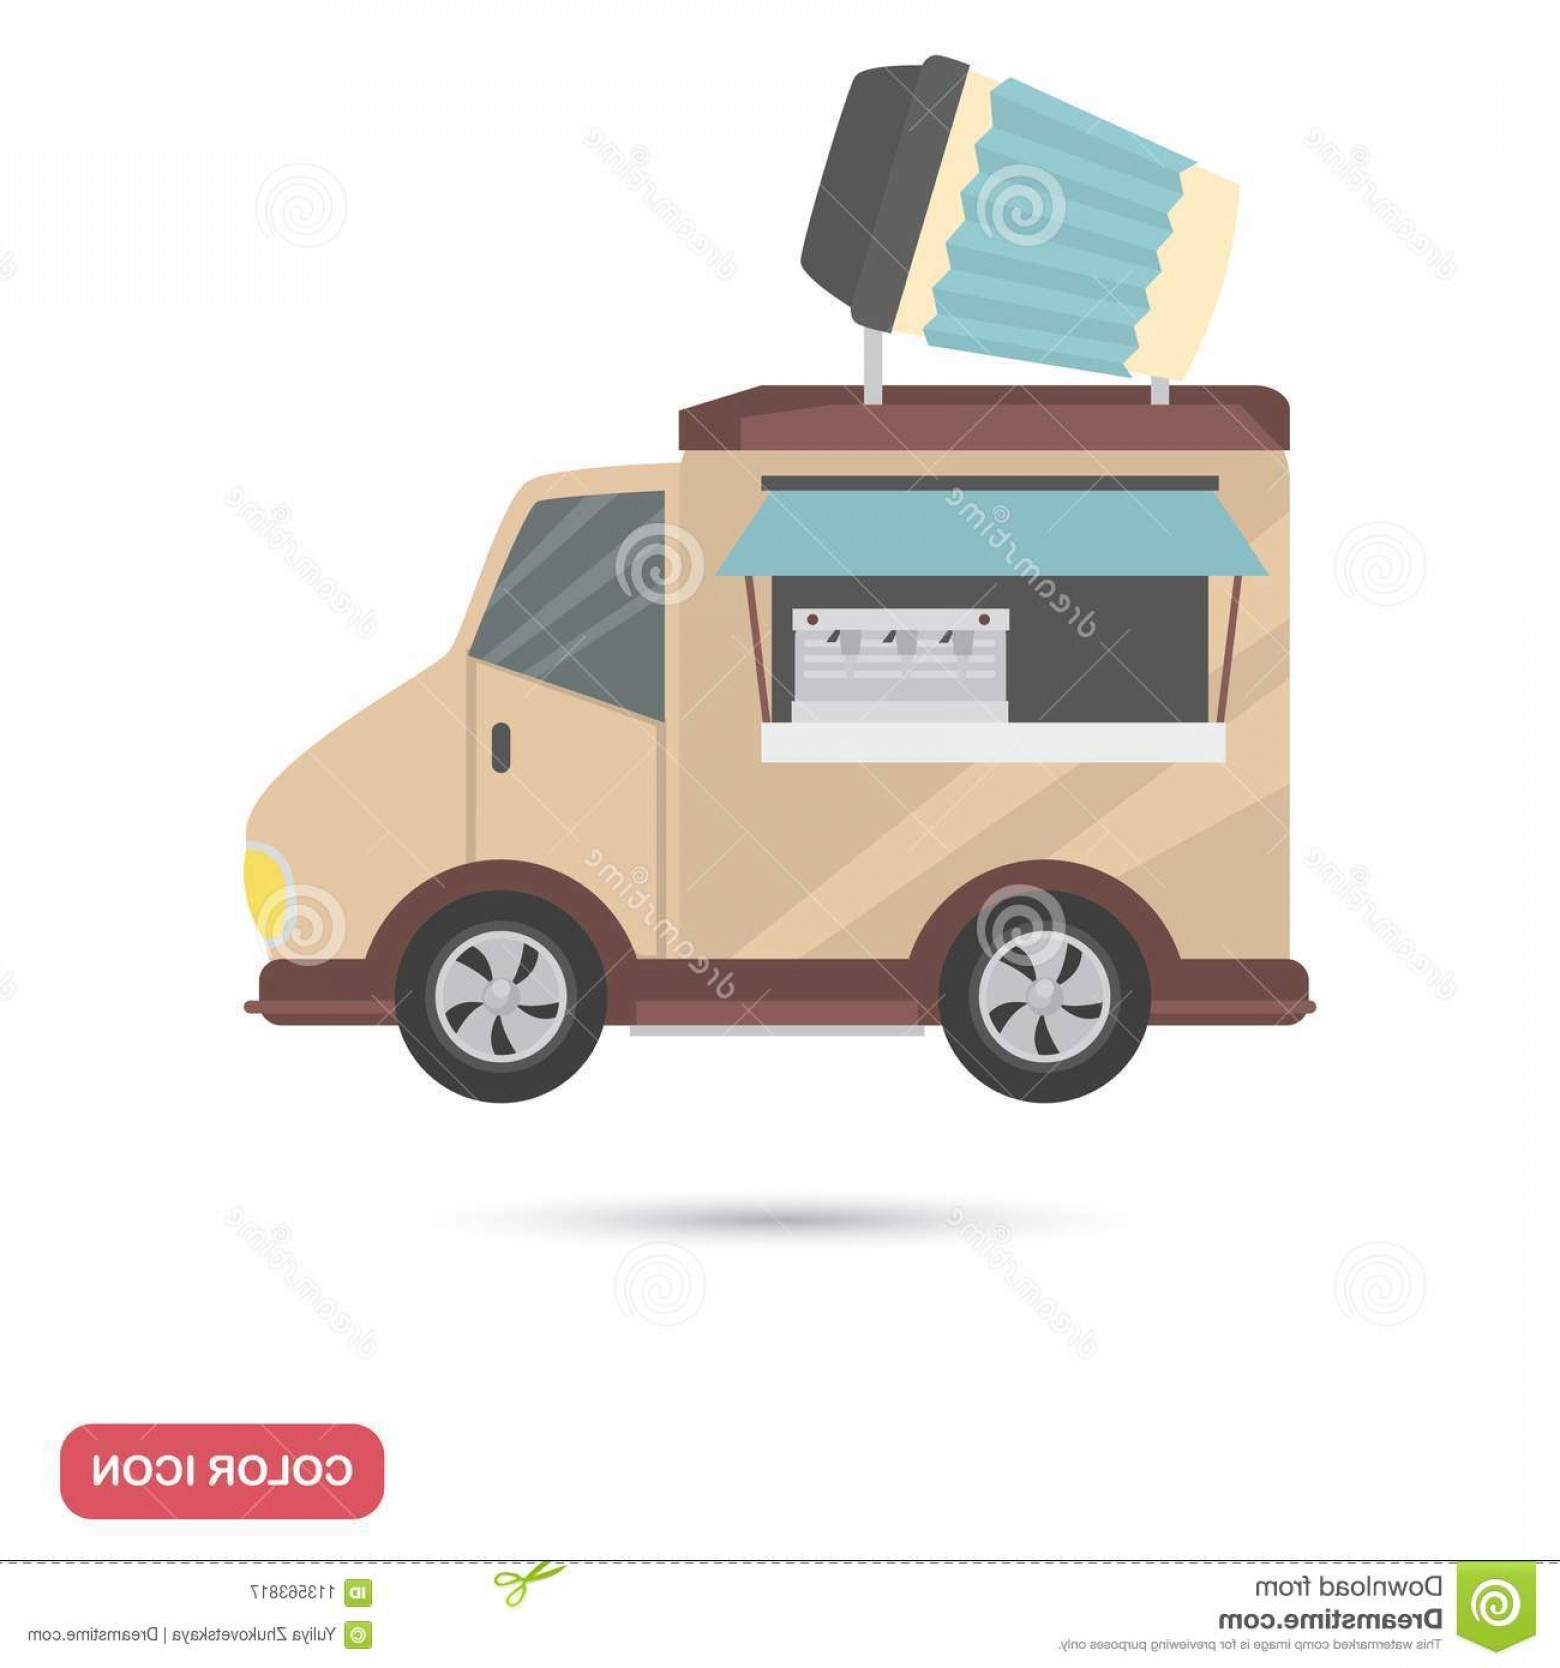 Wen Vehicle Vector Art: Coffee House Wheels Color Flat Icon Wen Mobile Design Coffee House Wheels Color Flat Icon Image